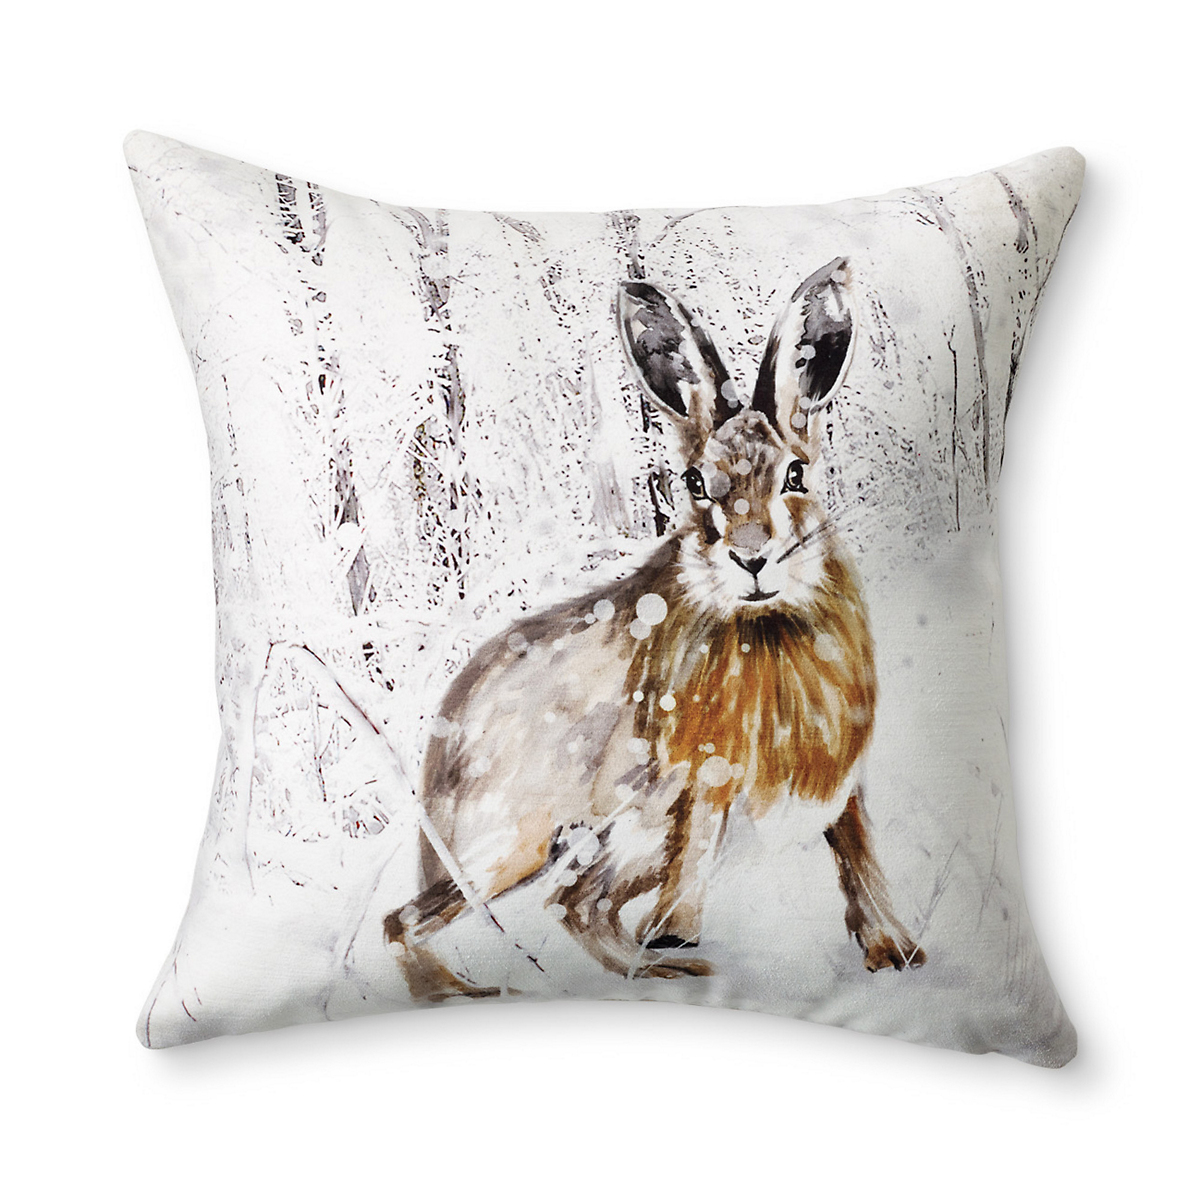 Pillows & Throws Luxury Home Accents